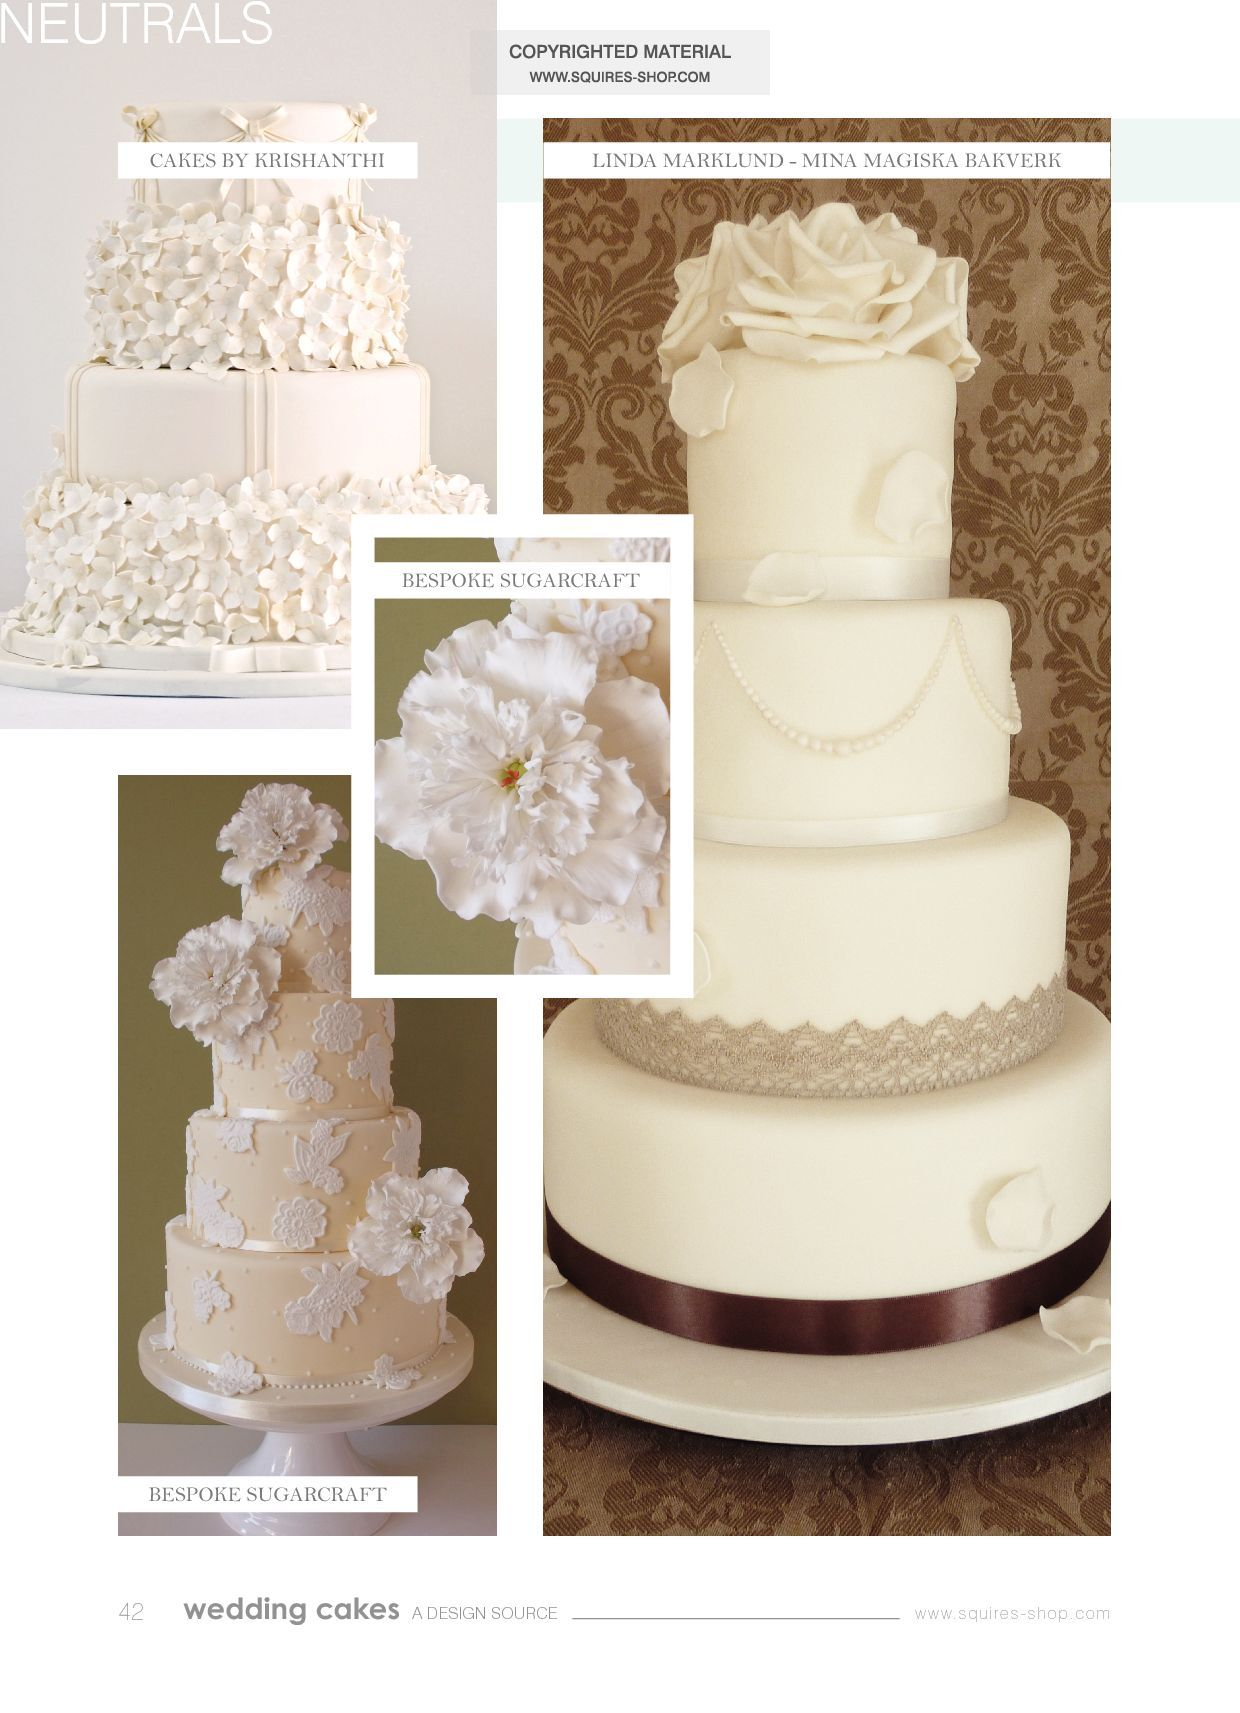 Wedding Cakes Magazine Winter 2012-13 | Squires Kitchen Shop